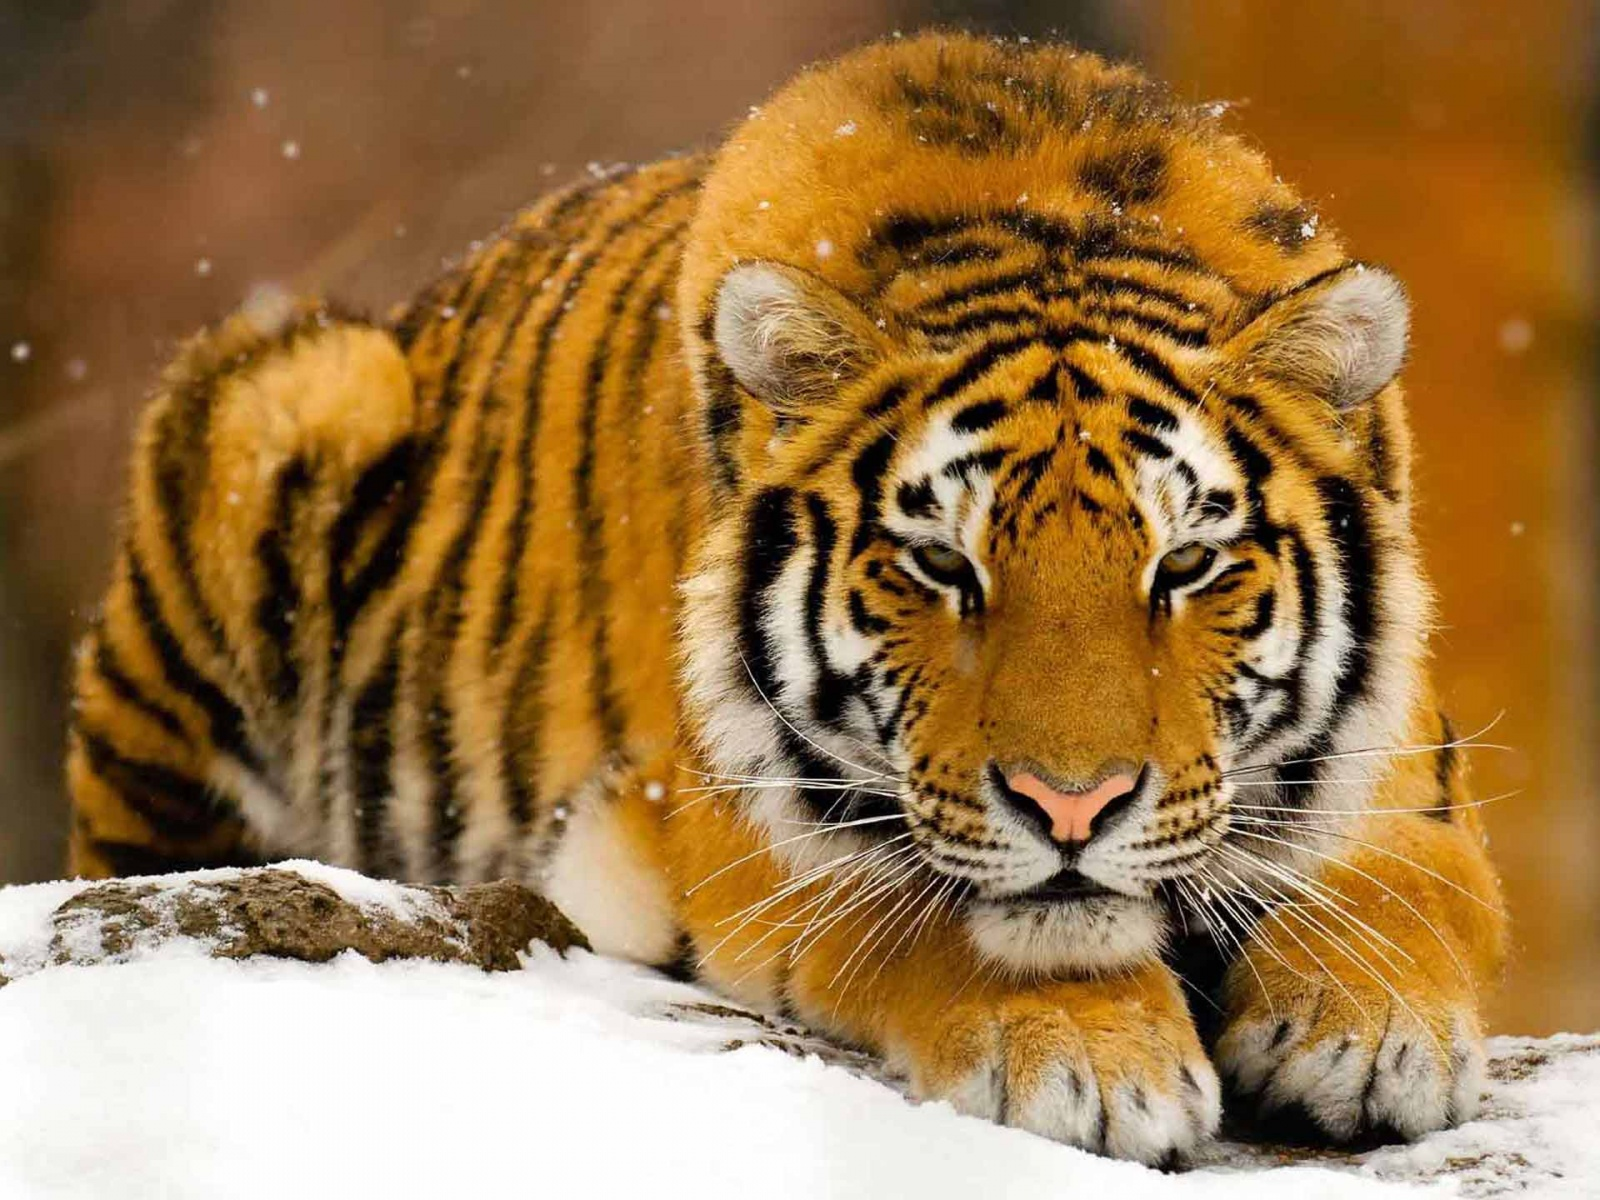 The best top desktop tiger wallpapers hd tiger wallpaper 21jpg 1600x1200